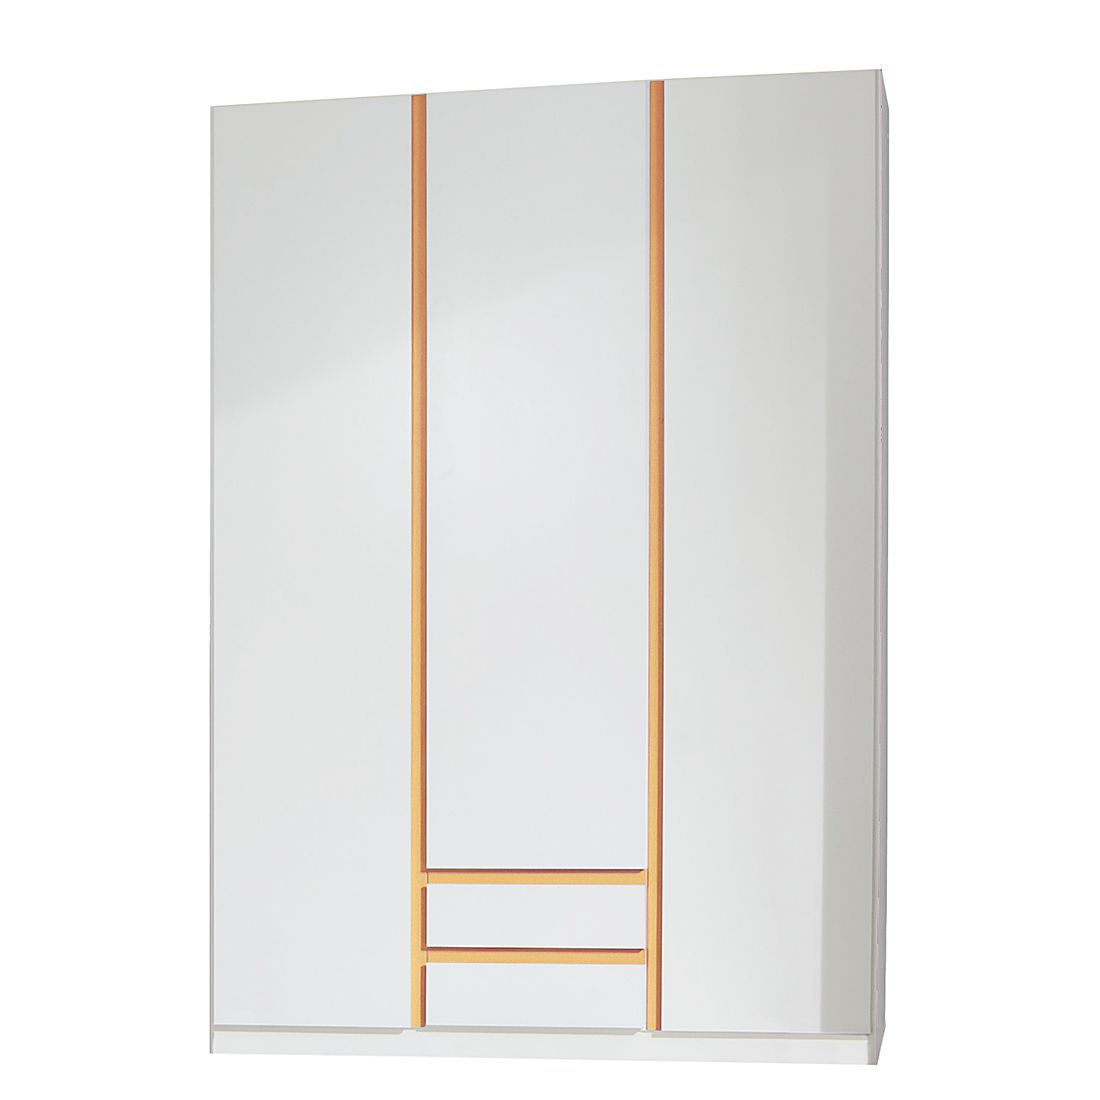 Armoire à vêtements Bibo II - Blanc alpin / Orange, Wimex